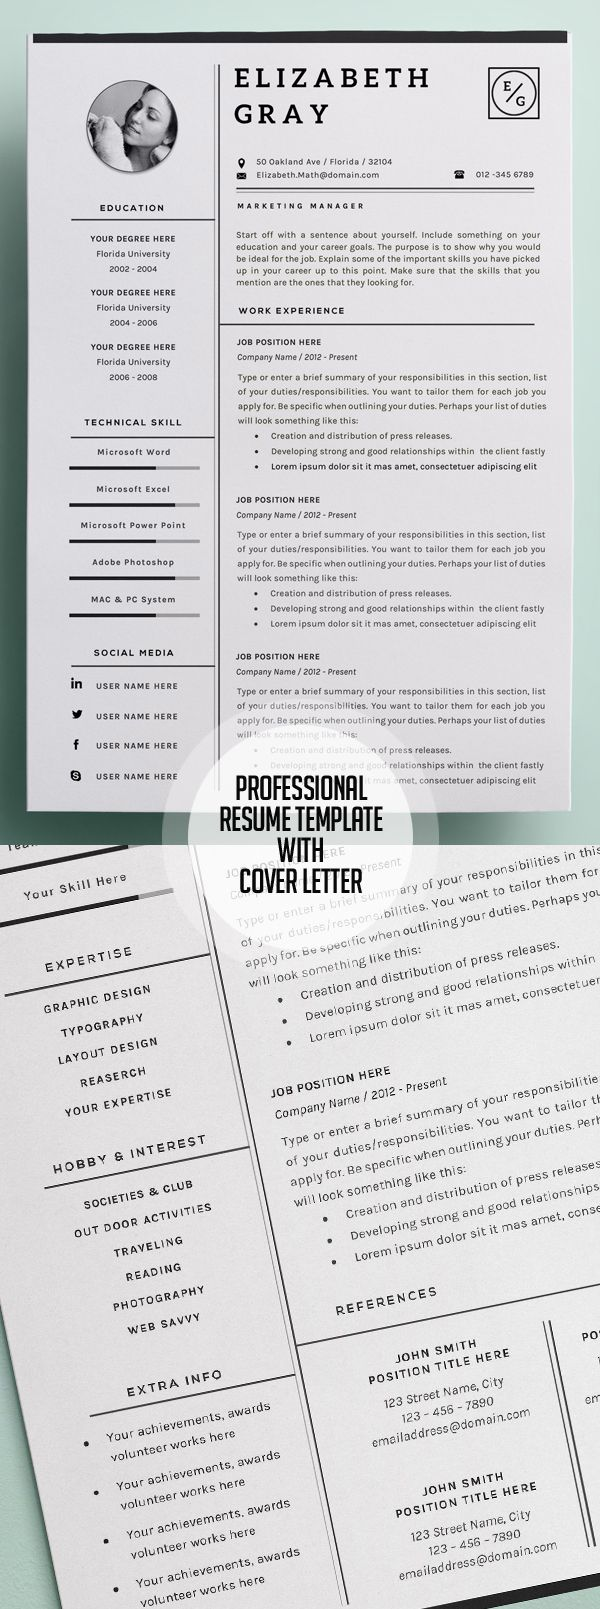 Opposenewapstandardsus  Personable  Resume Ideas On Pinterest  Resume Resume Templates And  With Goodlooking Professional And Modern Resume Template With Page Cover Cvtemplate With Agreeable How To Make An Impressive Resume Also Summary Statement For Resume In Addition Sports Management Resume And Good Job Resume As Well As Nursing Student Resume Clinical Experience Additionally Resume Summary Examples For Customer Service From Pinterestcom With Opposenewapstandardsus  Goodlooking  Resume Ideas On Pinterest  Resume Resume Templates And  With Agreeable Professional And Modern Resume Template With Page Cover Cvtemplate And Personable How To Make An Impressive Resume Also Summary Statement For Resume In Addition Sports Management Resume From Pinterestcom